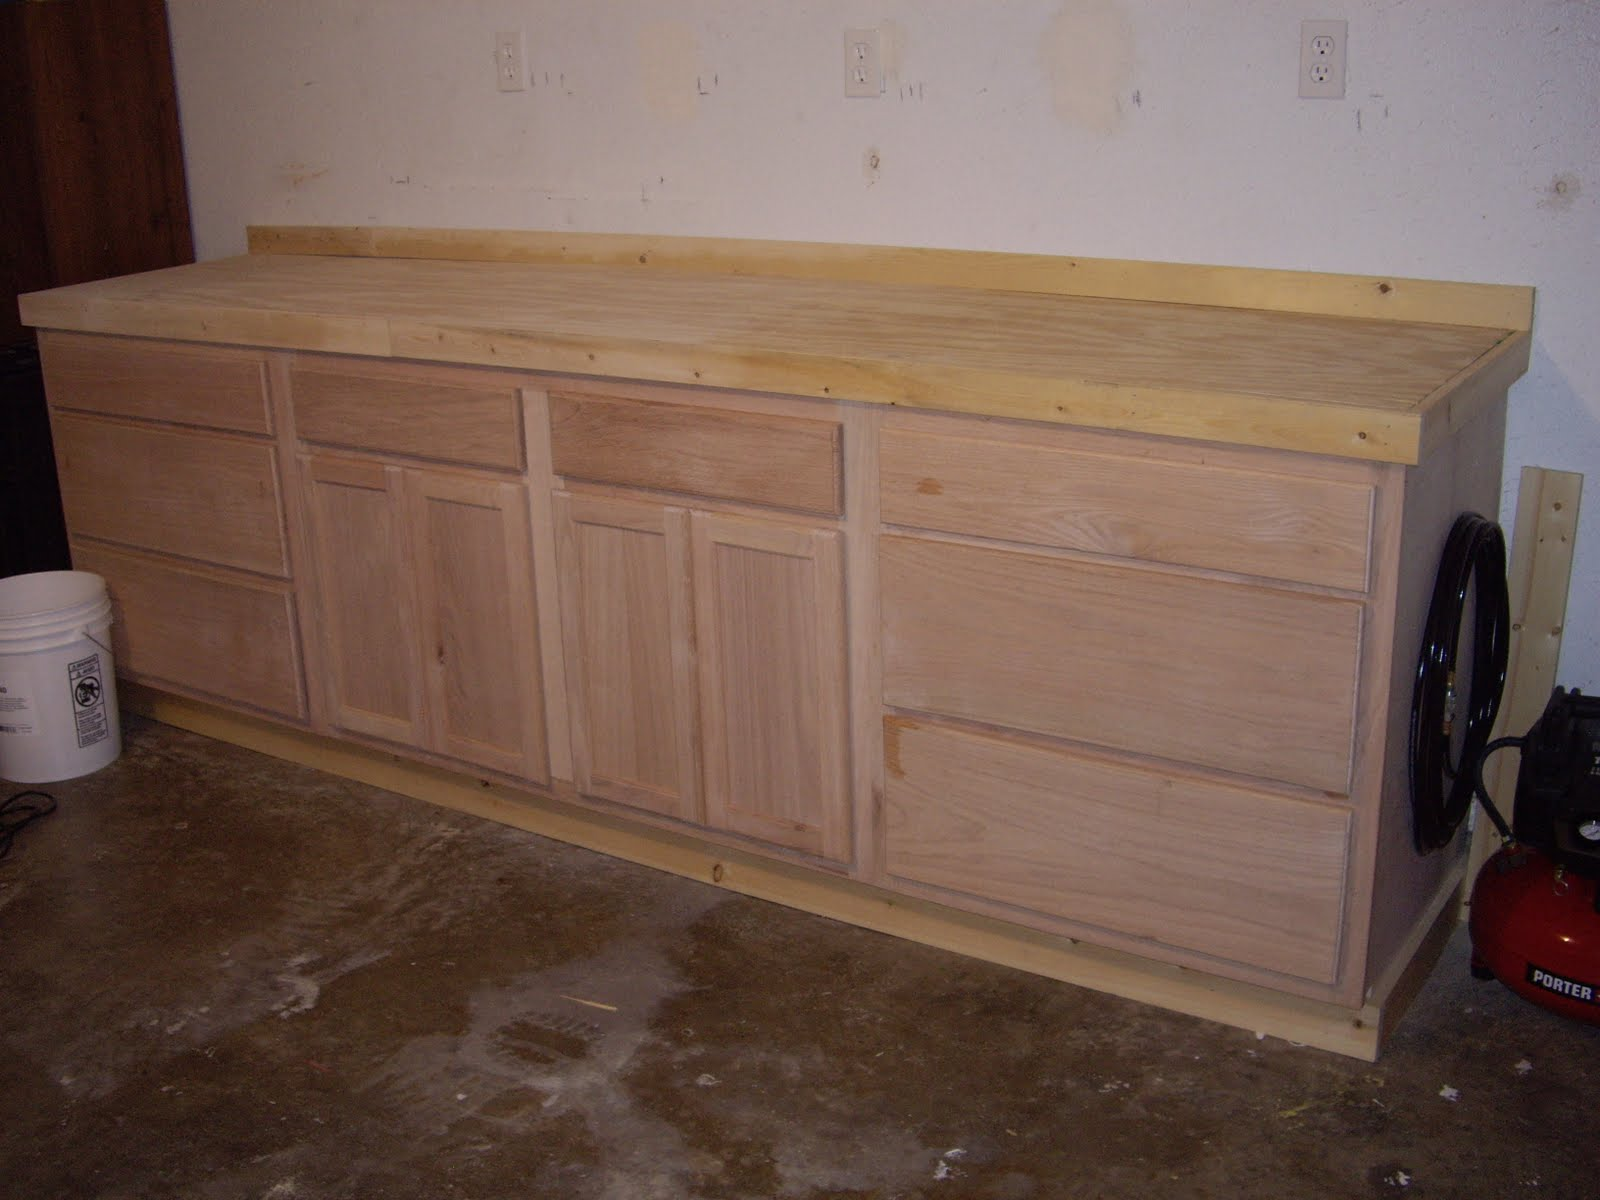 Best woodworking plans website plans to making how to - Woodcraft unfinished kitchen cabinets ...